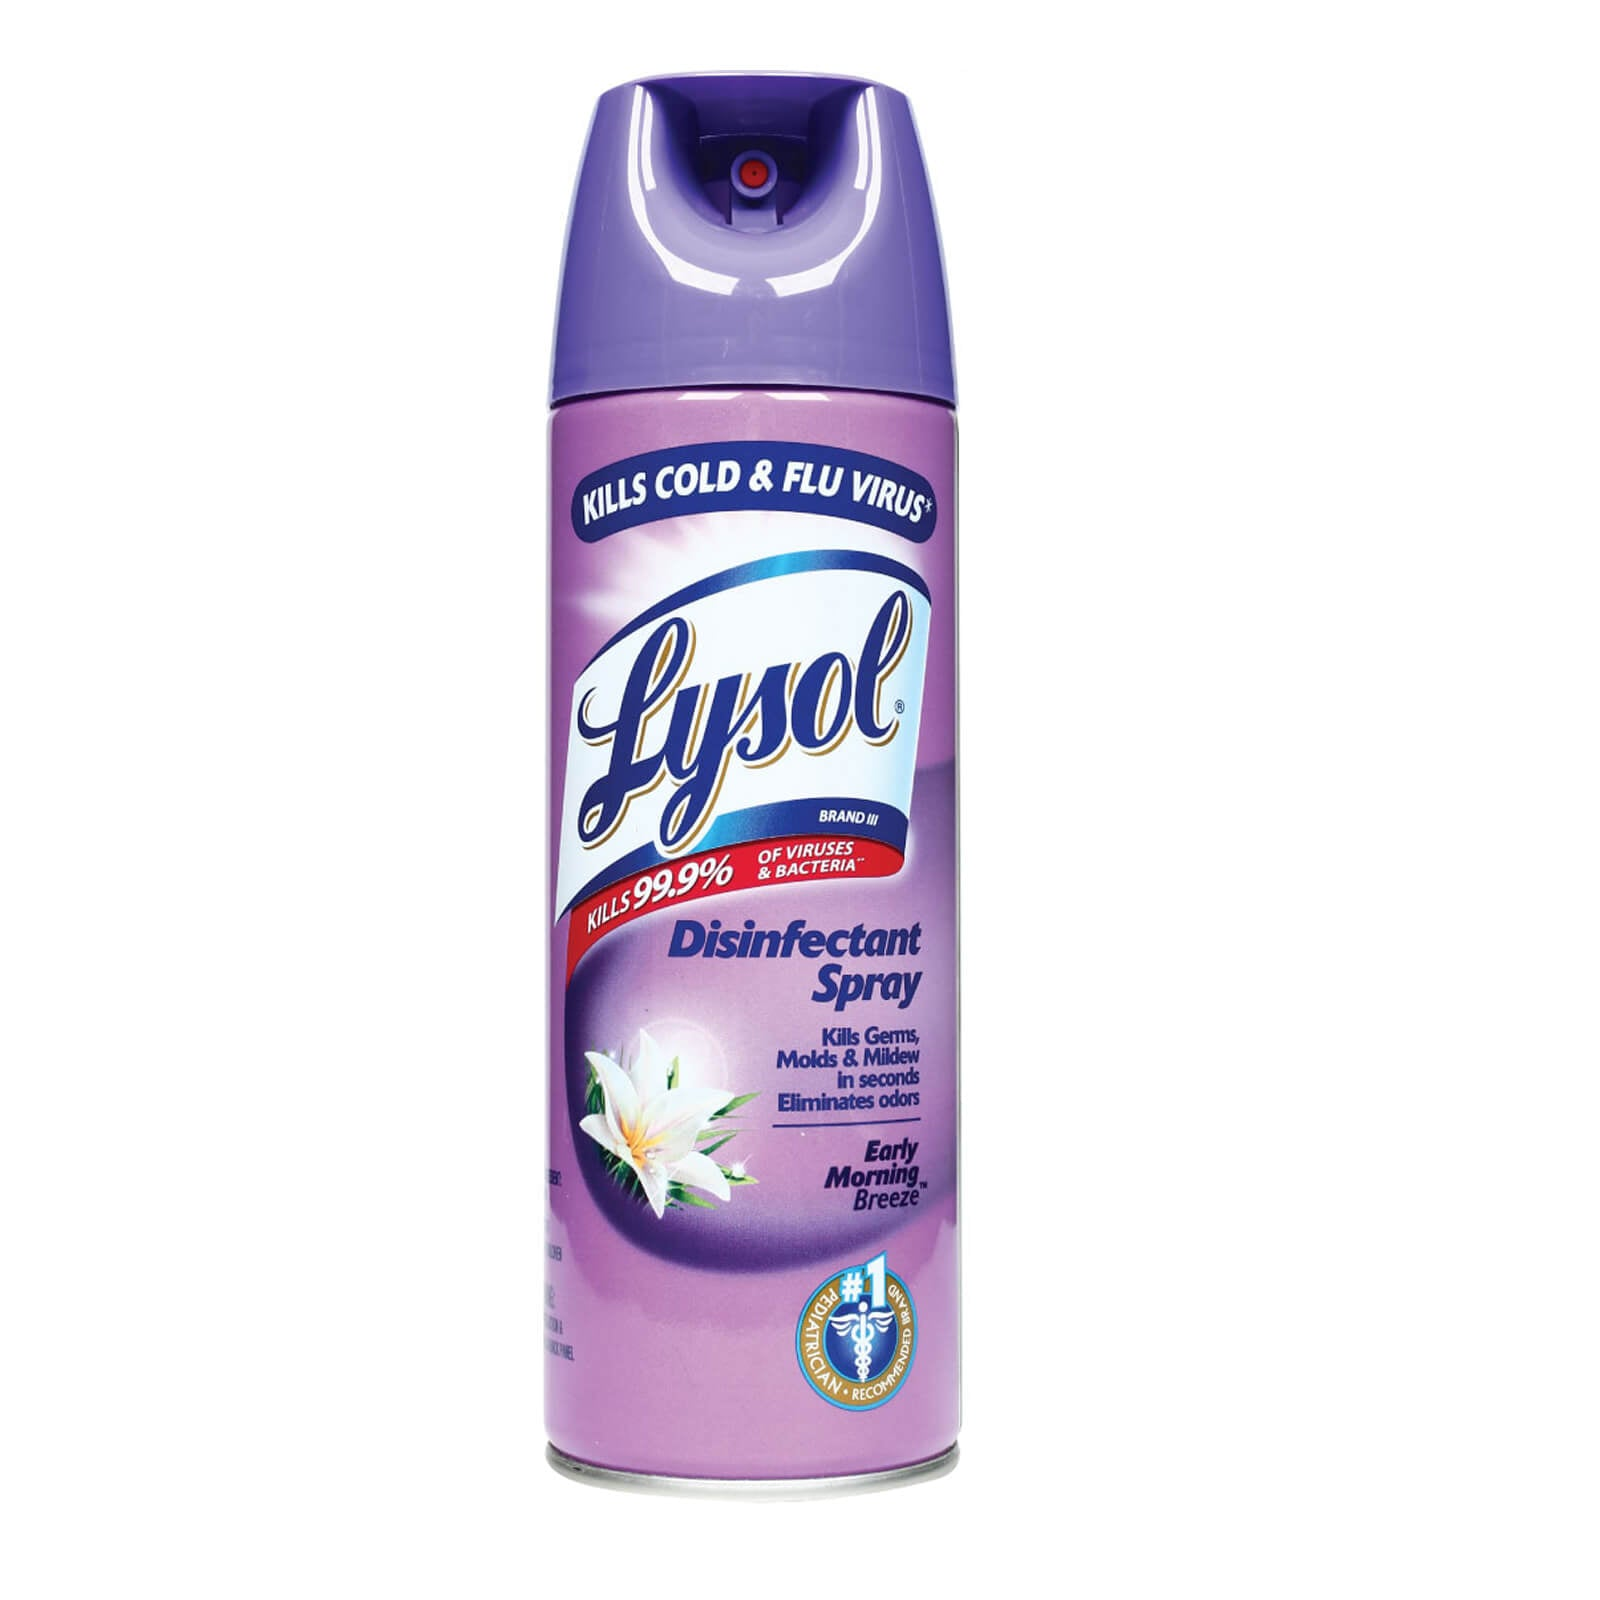 Lysol disinfectant spray early morning breeze 510g